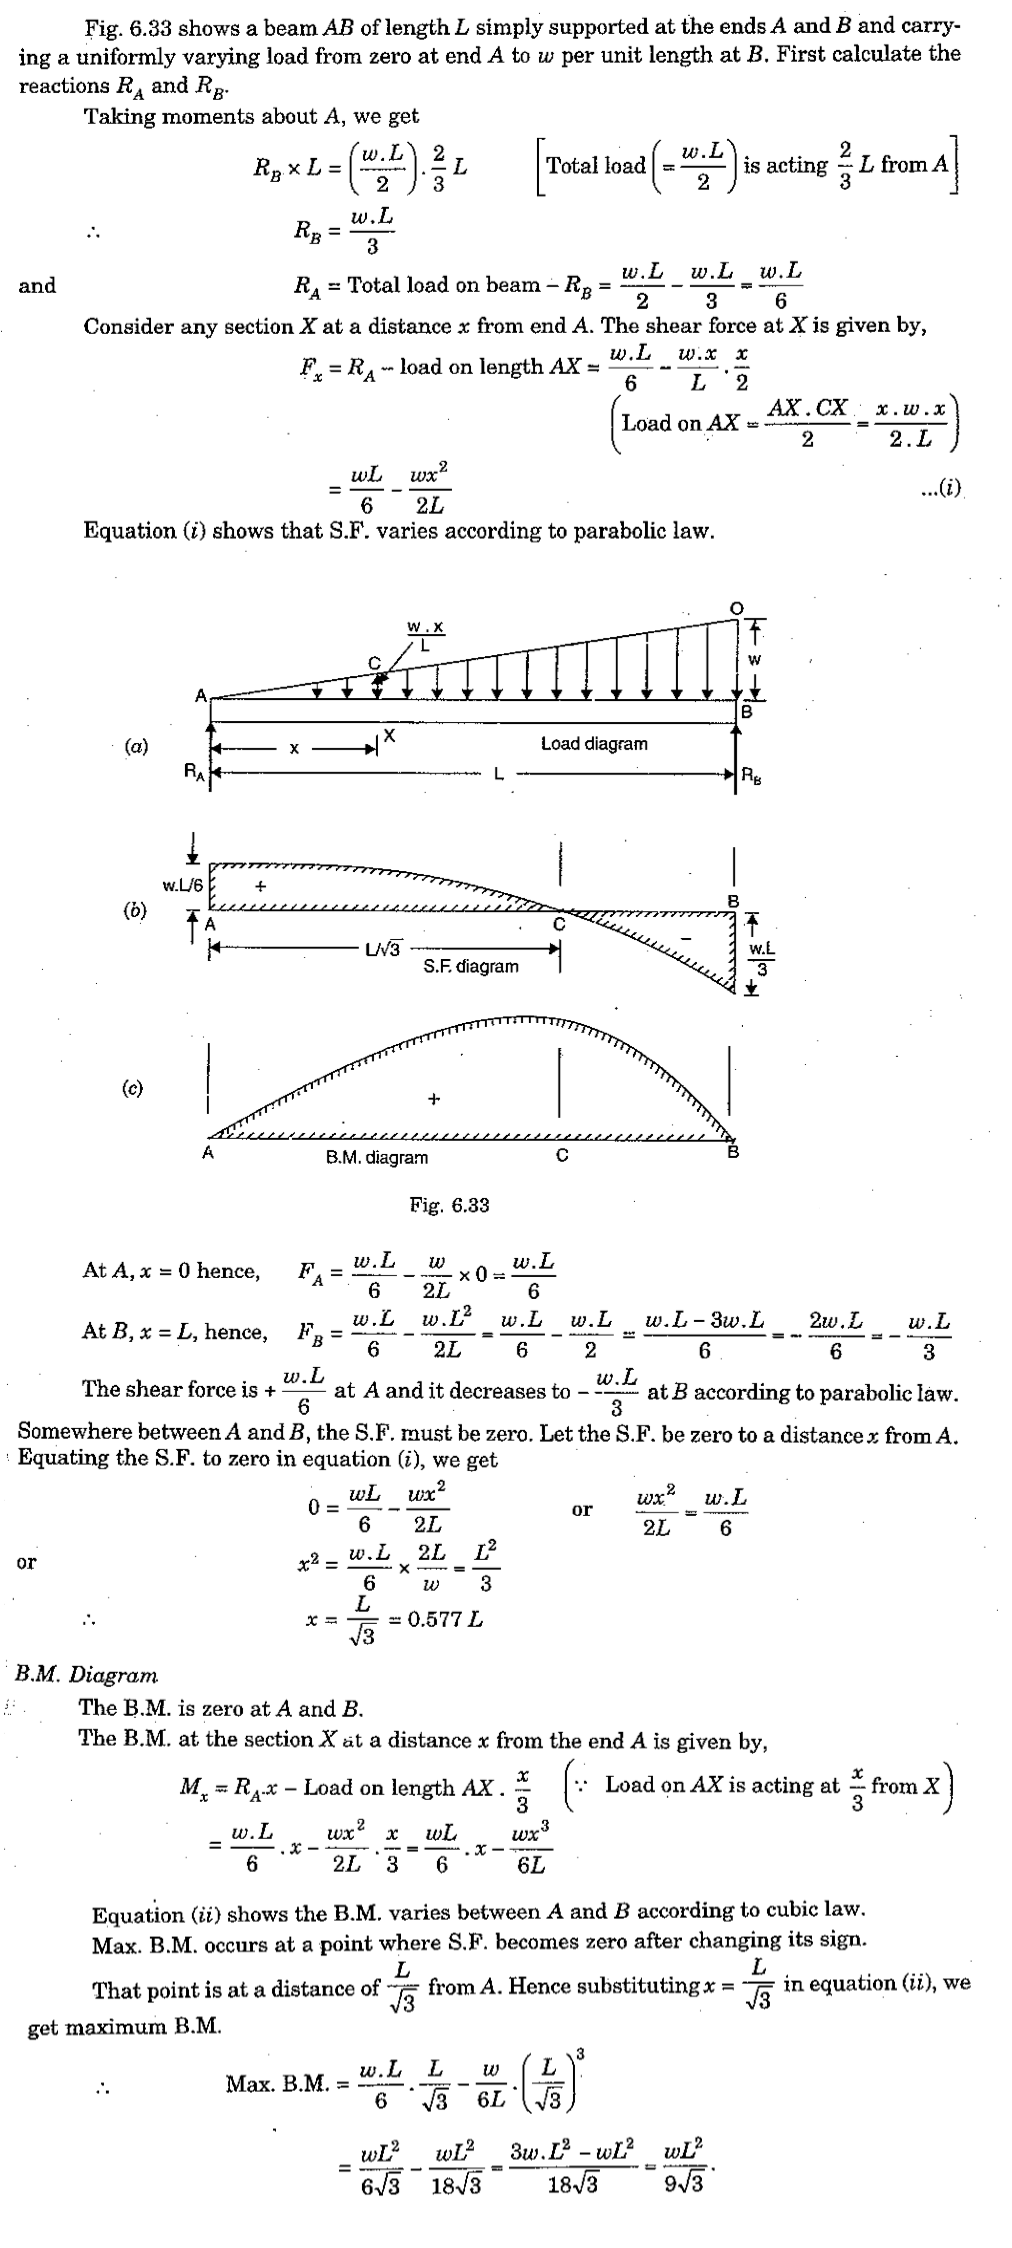 bending moment diagram for simply supported beam mtd yard machine wiring shear force and a with uniformly varying load from 0 zero at one end to the w weight other